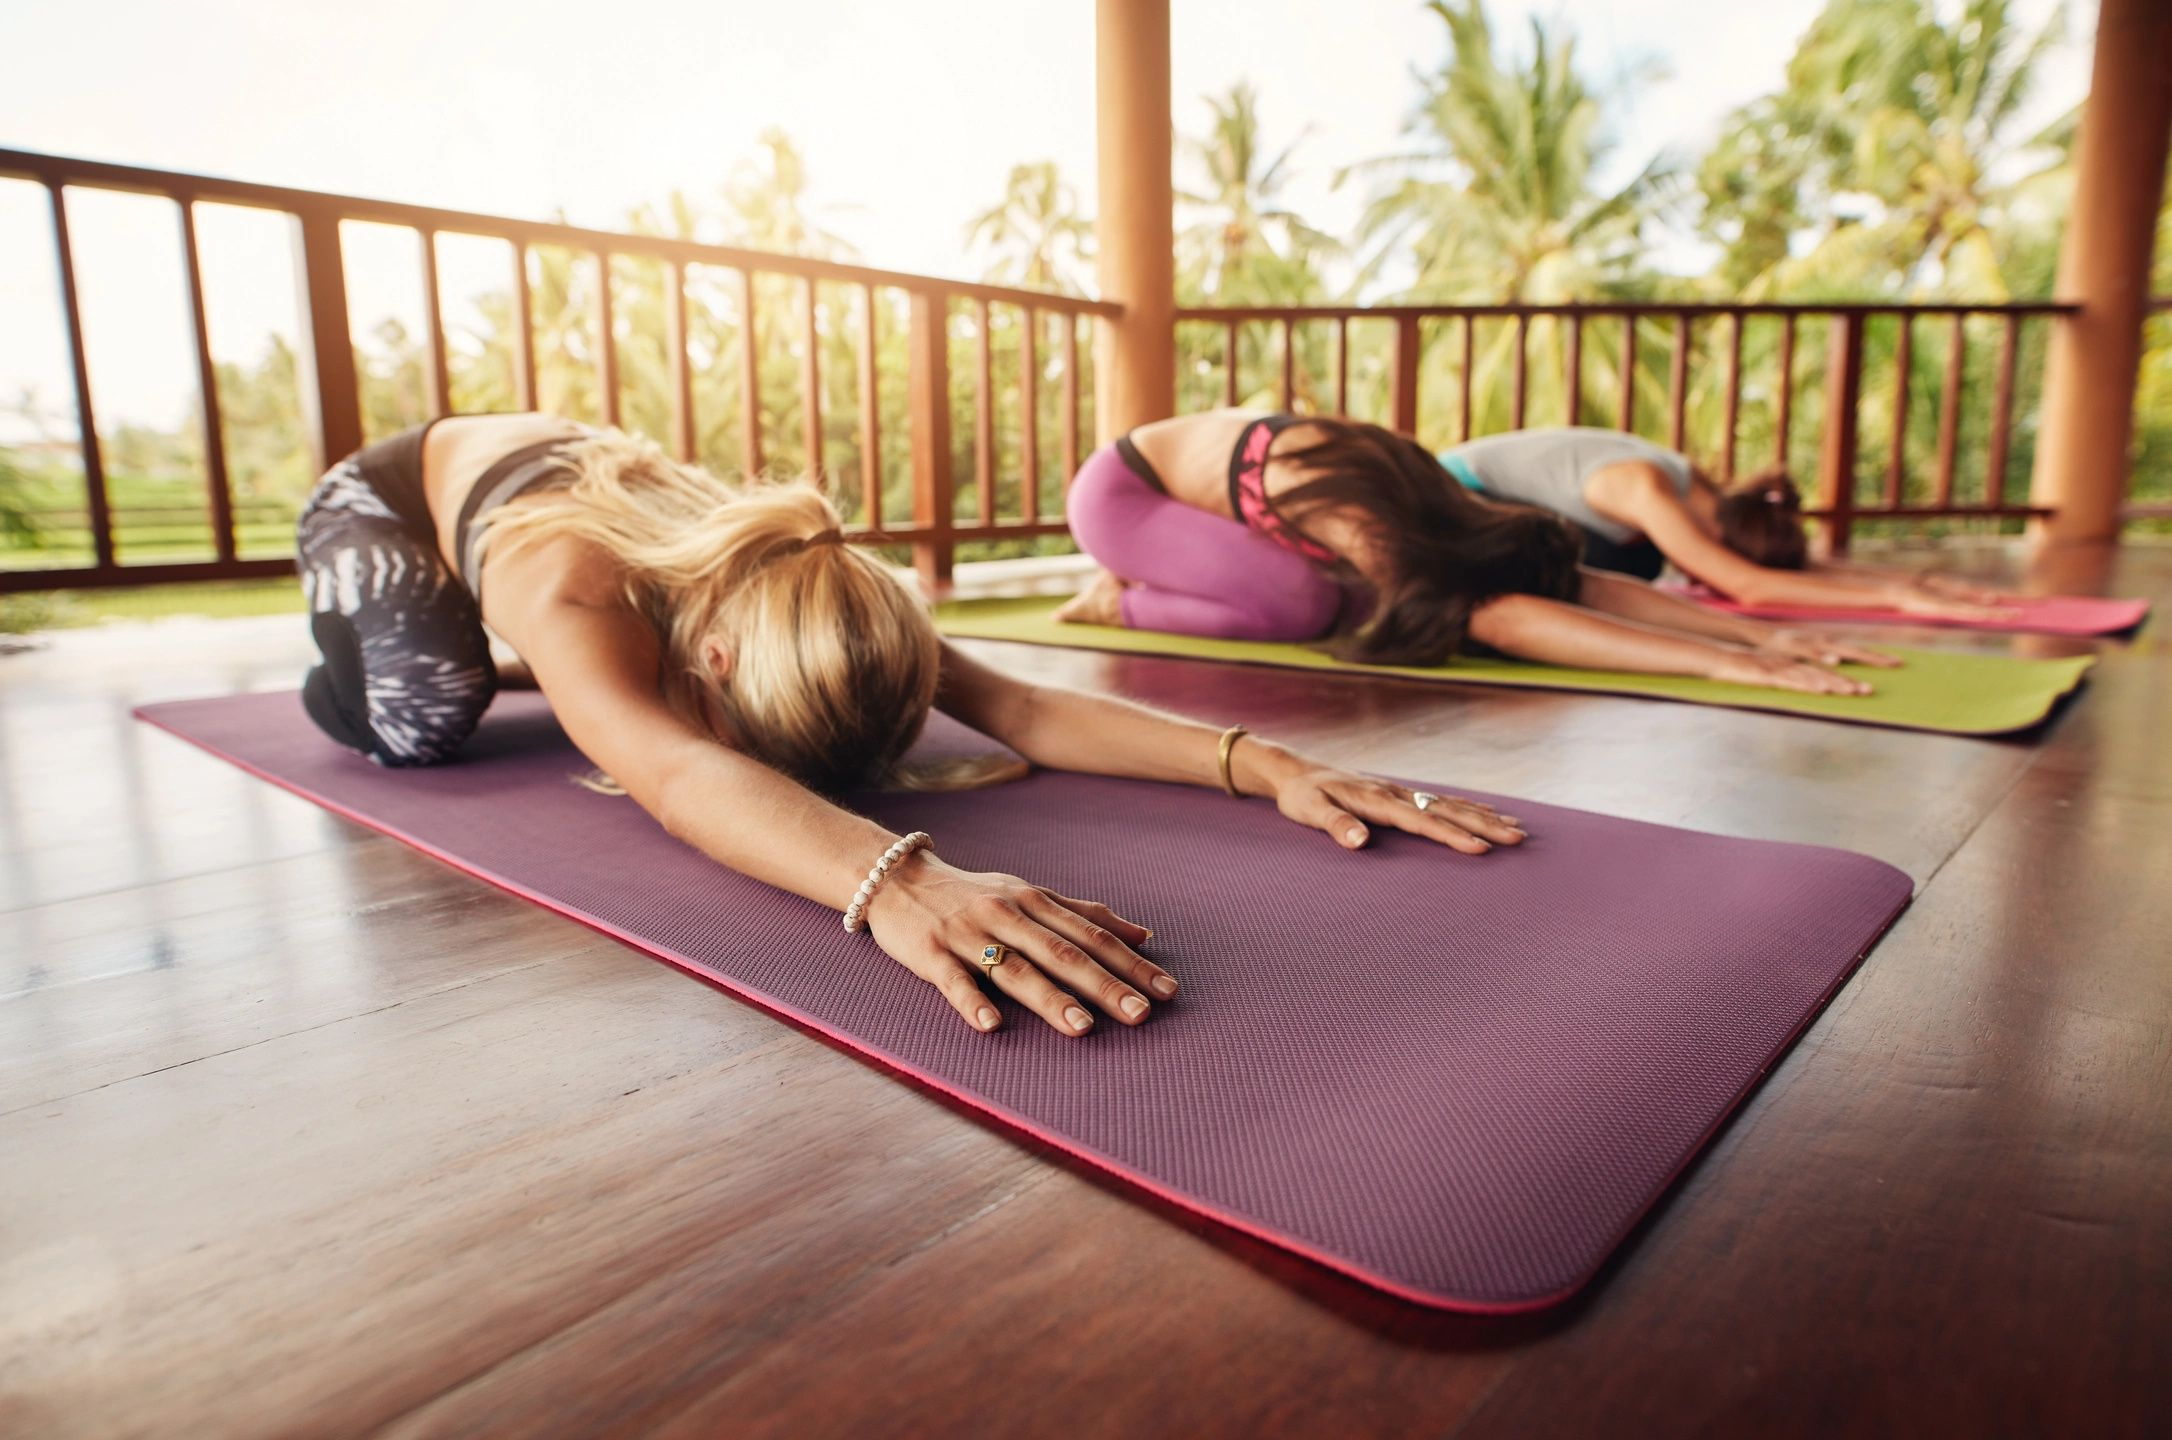 Mat Pilates every Thursday at 9:30am. 2a Brighton Rd St Kilda Vic 3182 sms Rocco 0412 519 495 to book. Only $15 pp